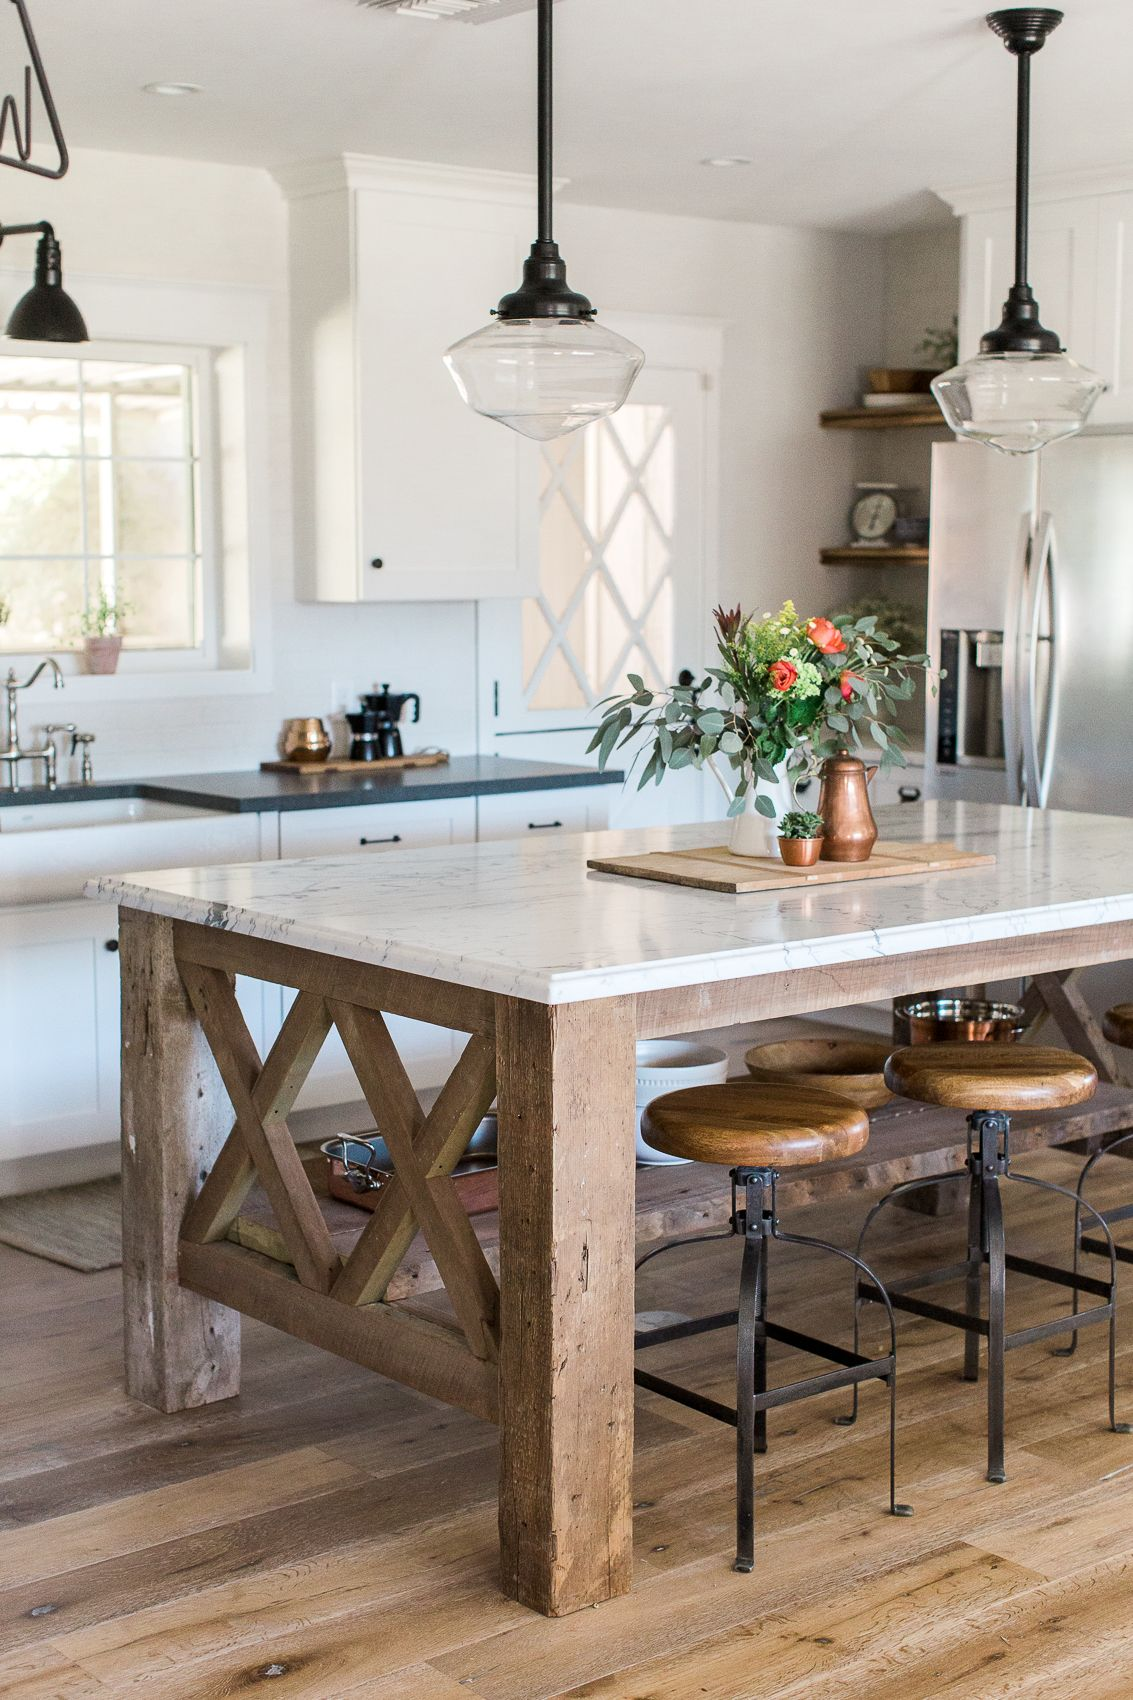 Custom Kitchen Islands Pictures Ideas Tips From Hgtv: Custom Kitchen Island Built From Barnwood With Marble